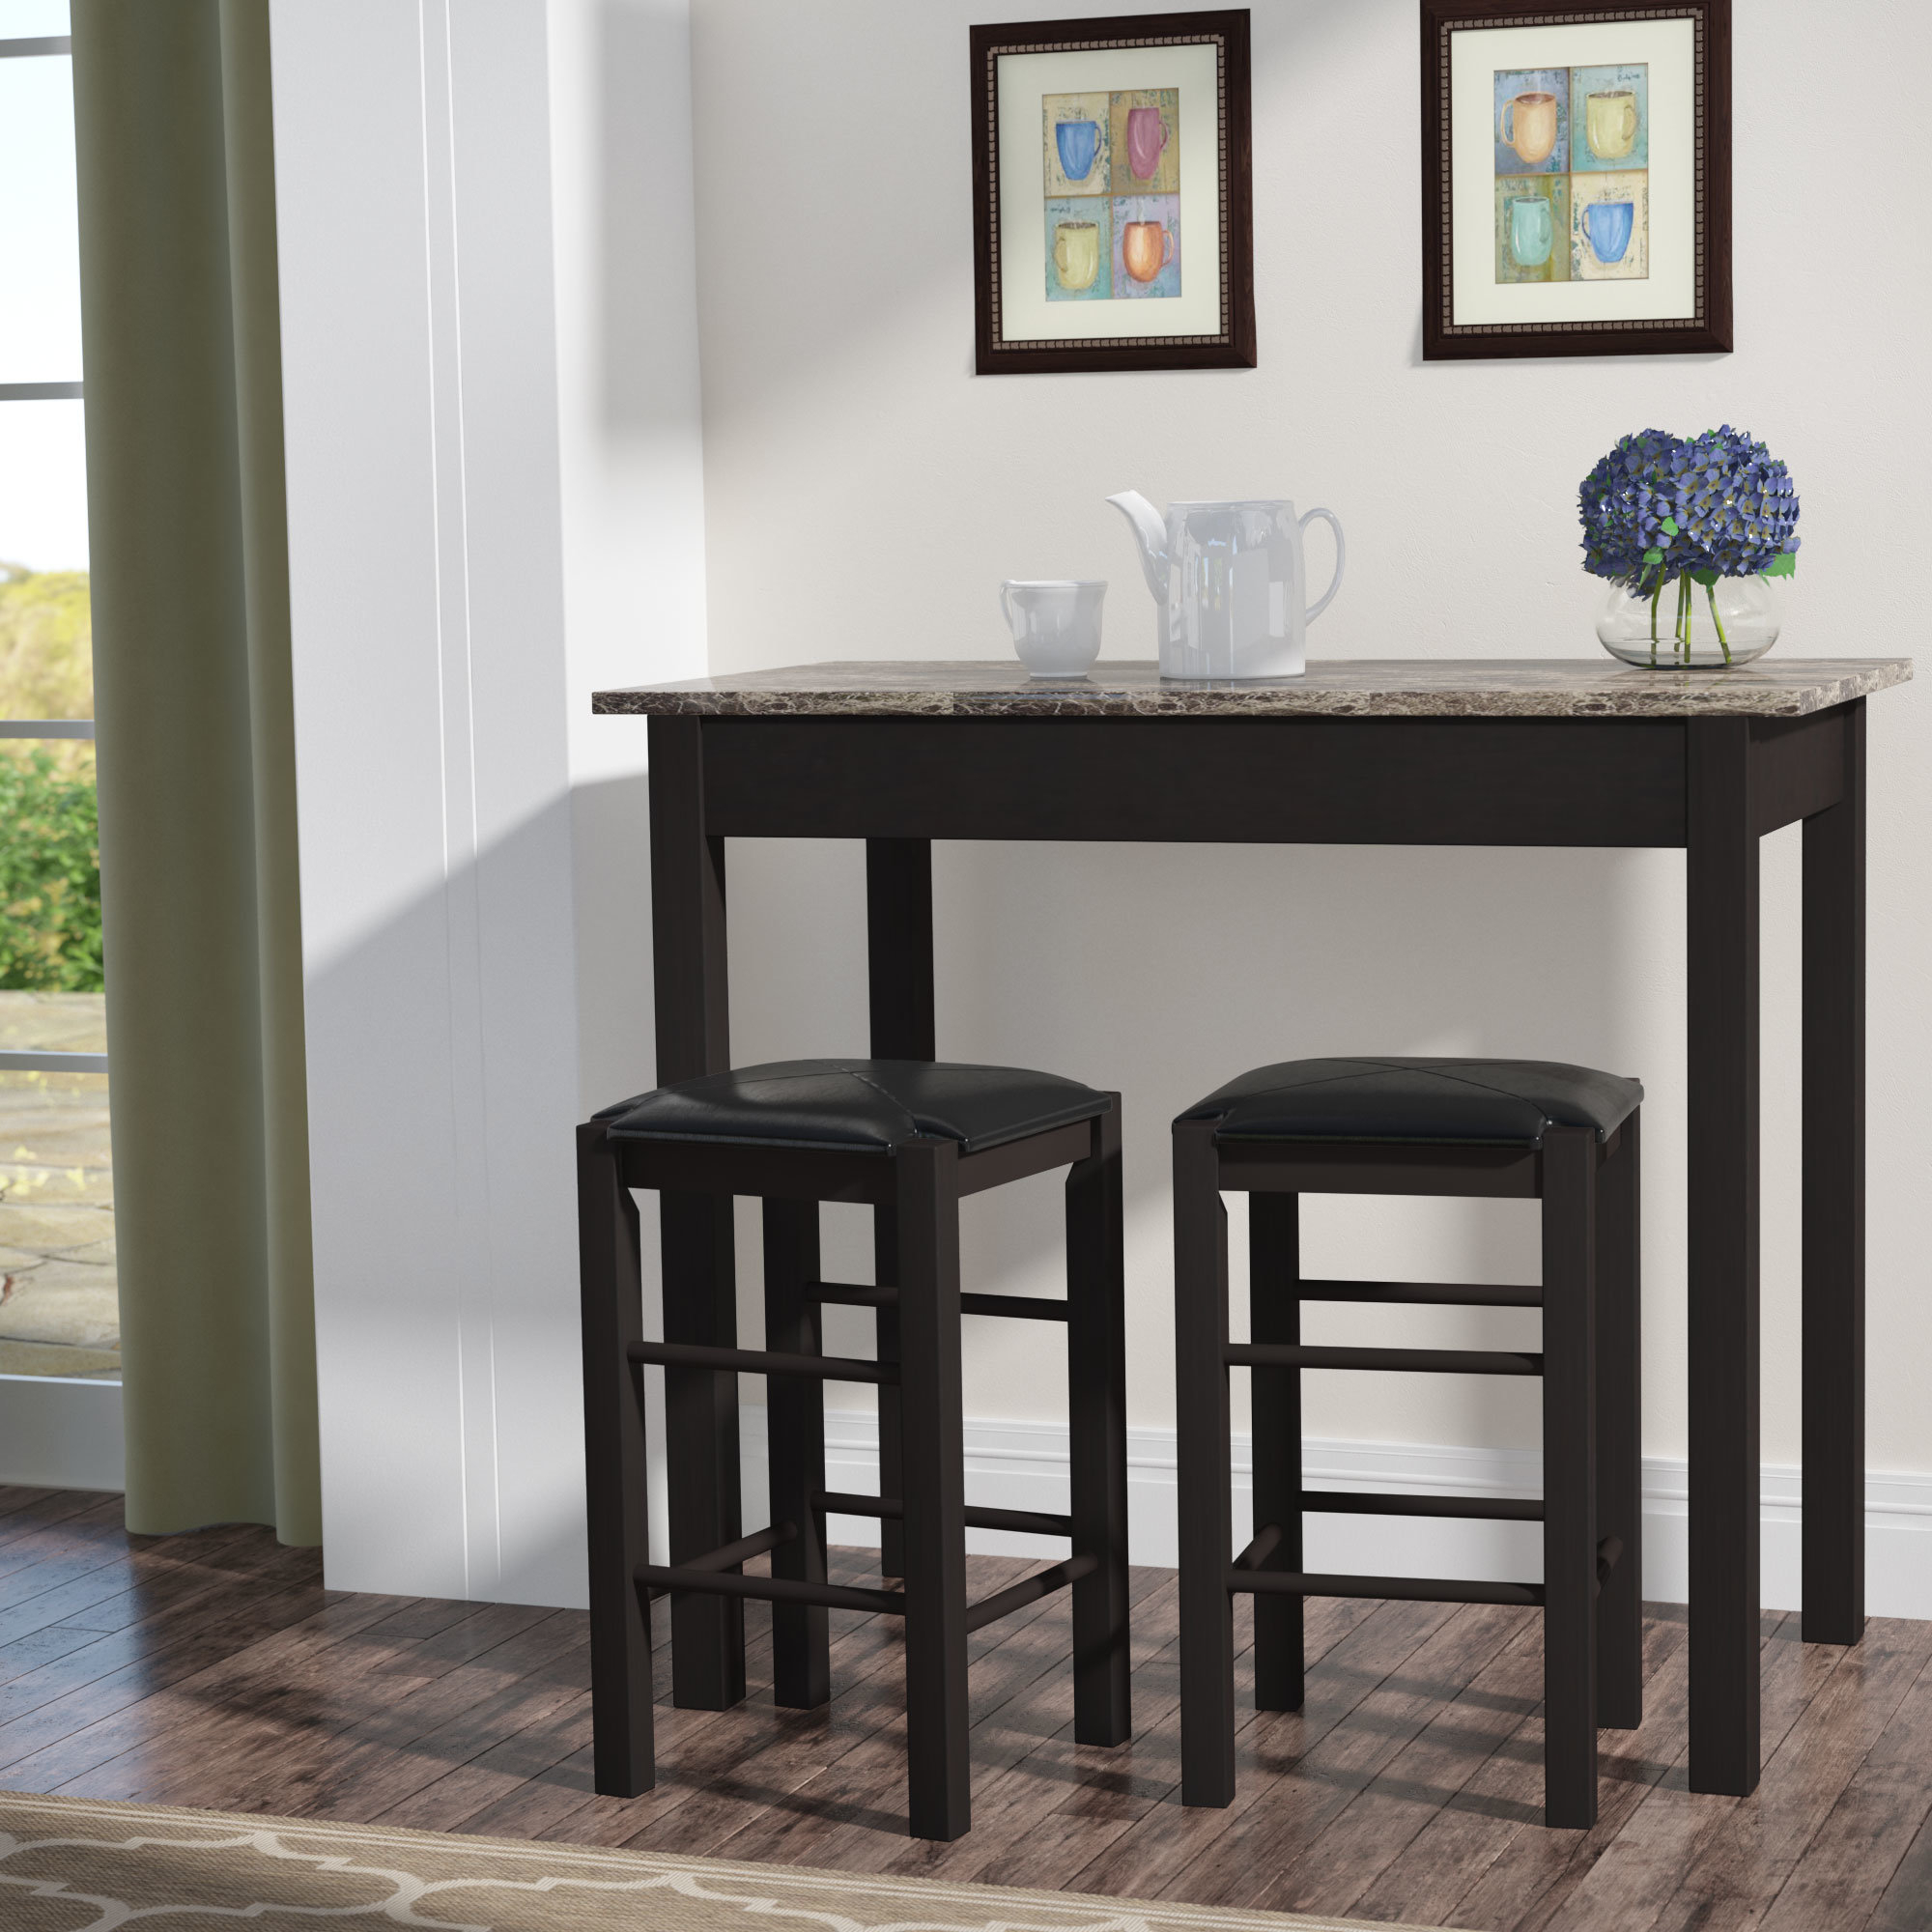 Popular Sheetz 3 Piece Counter Height Dining Set Regarding Debby Small Space 3 Piece Dining Sets (View 16 of 25)